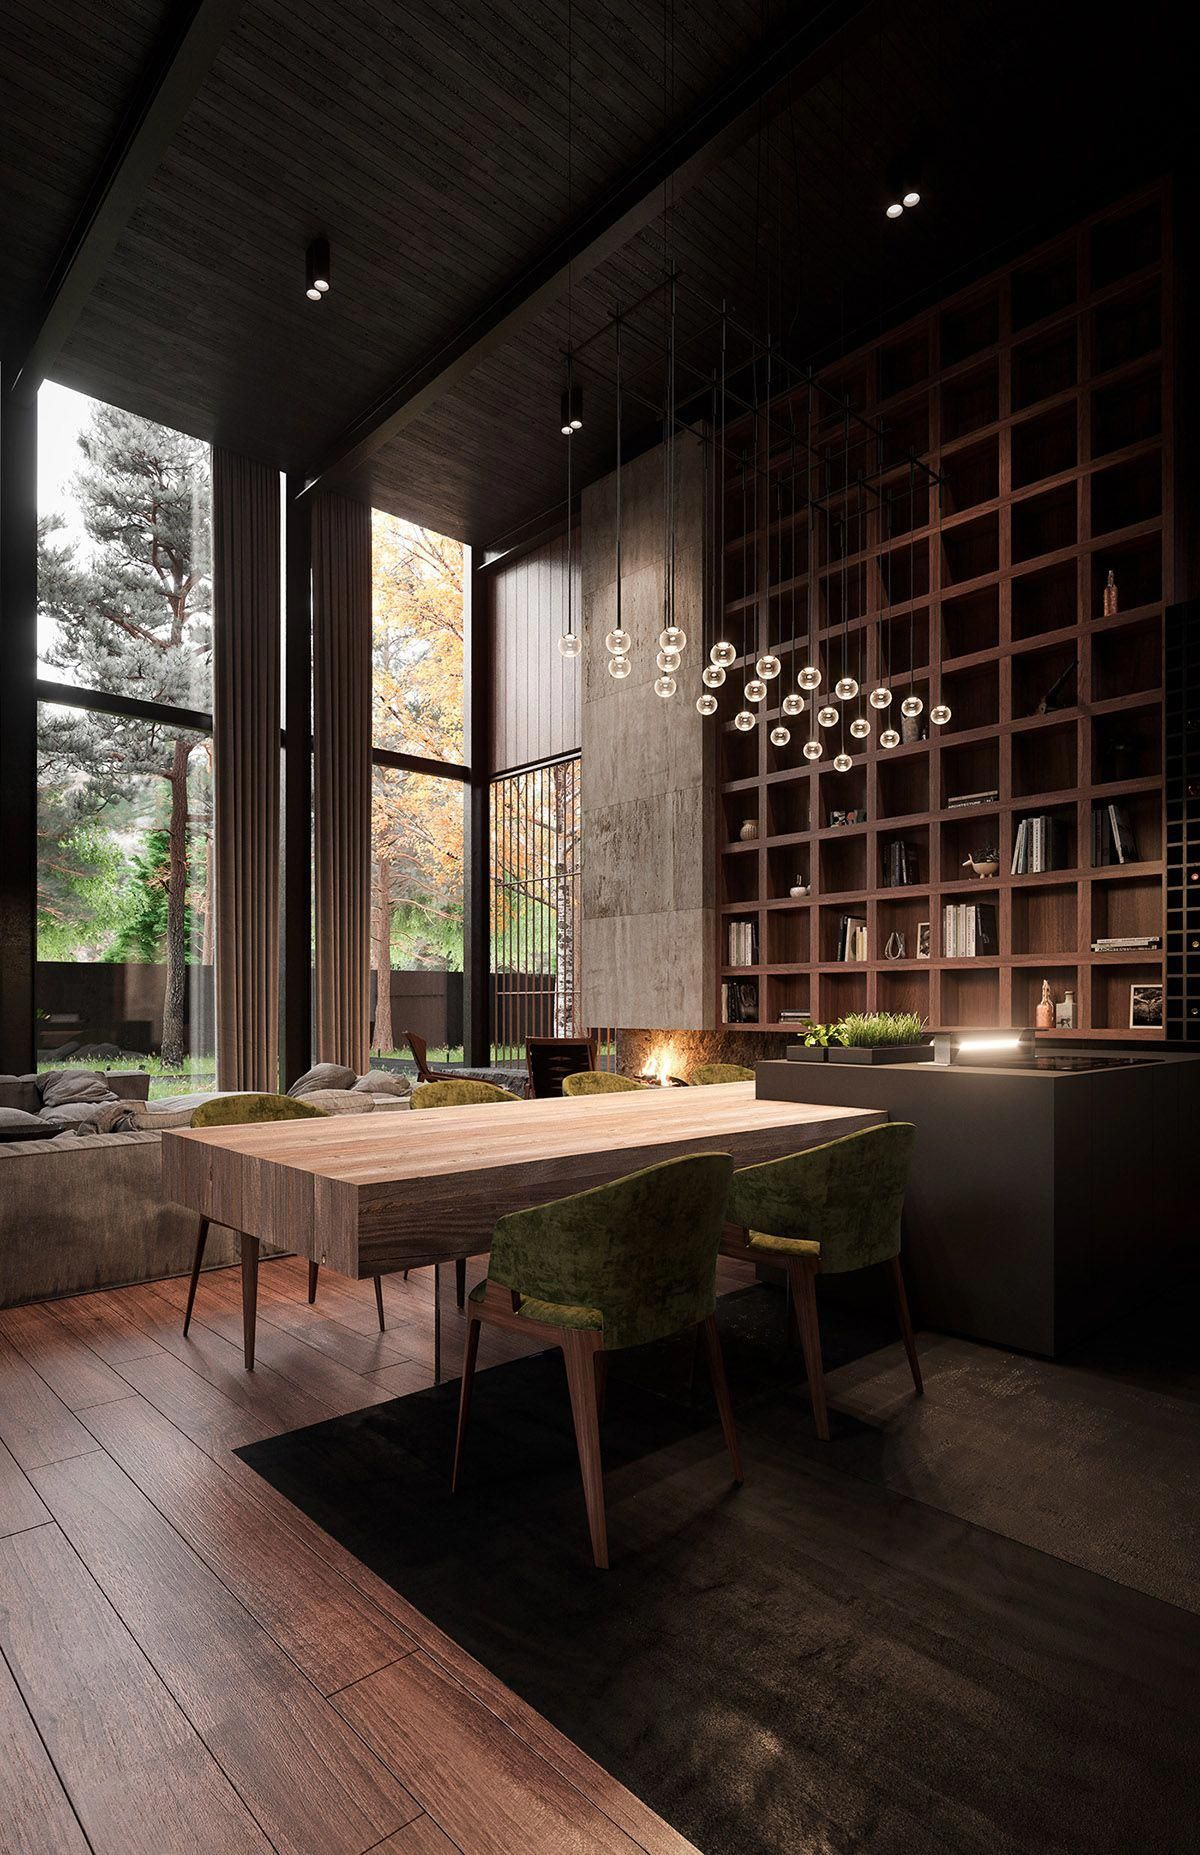 Rich Exquisite Modern Rustic Home Interior